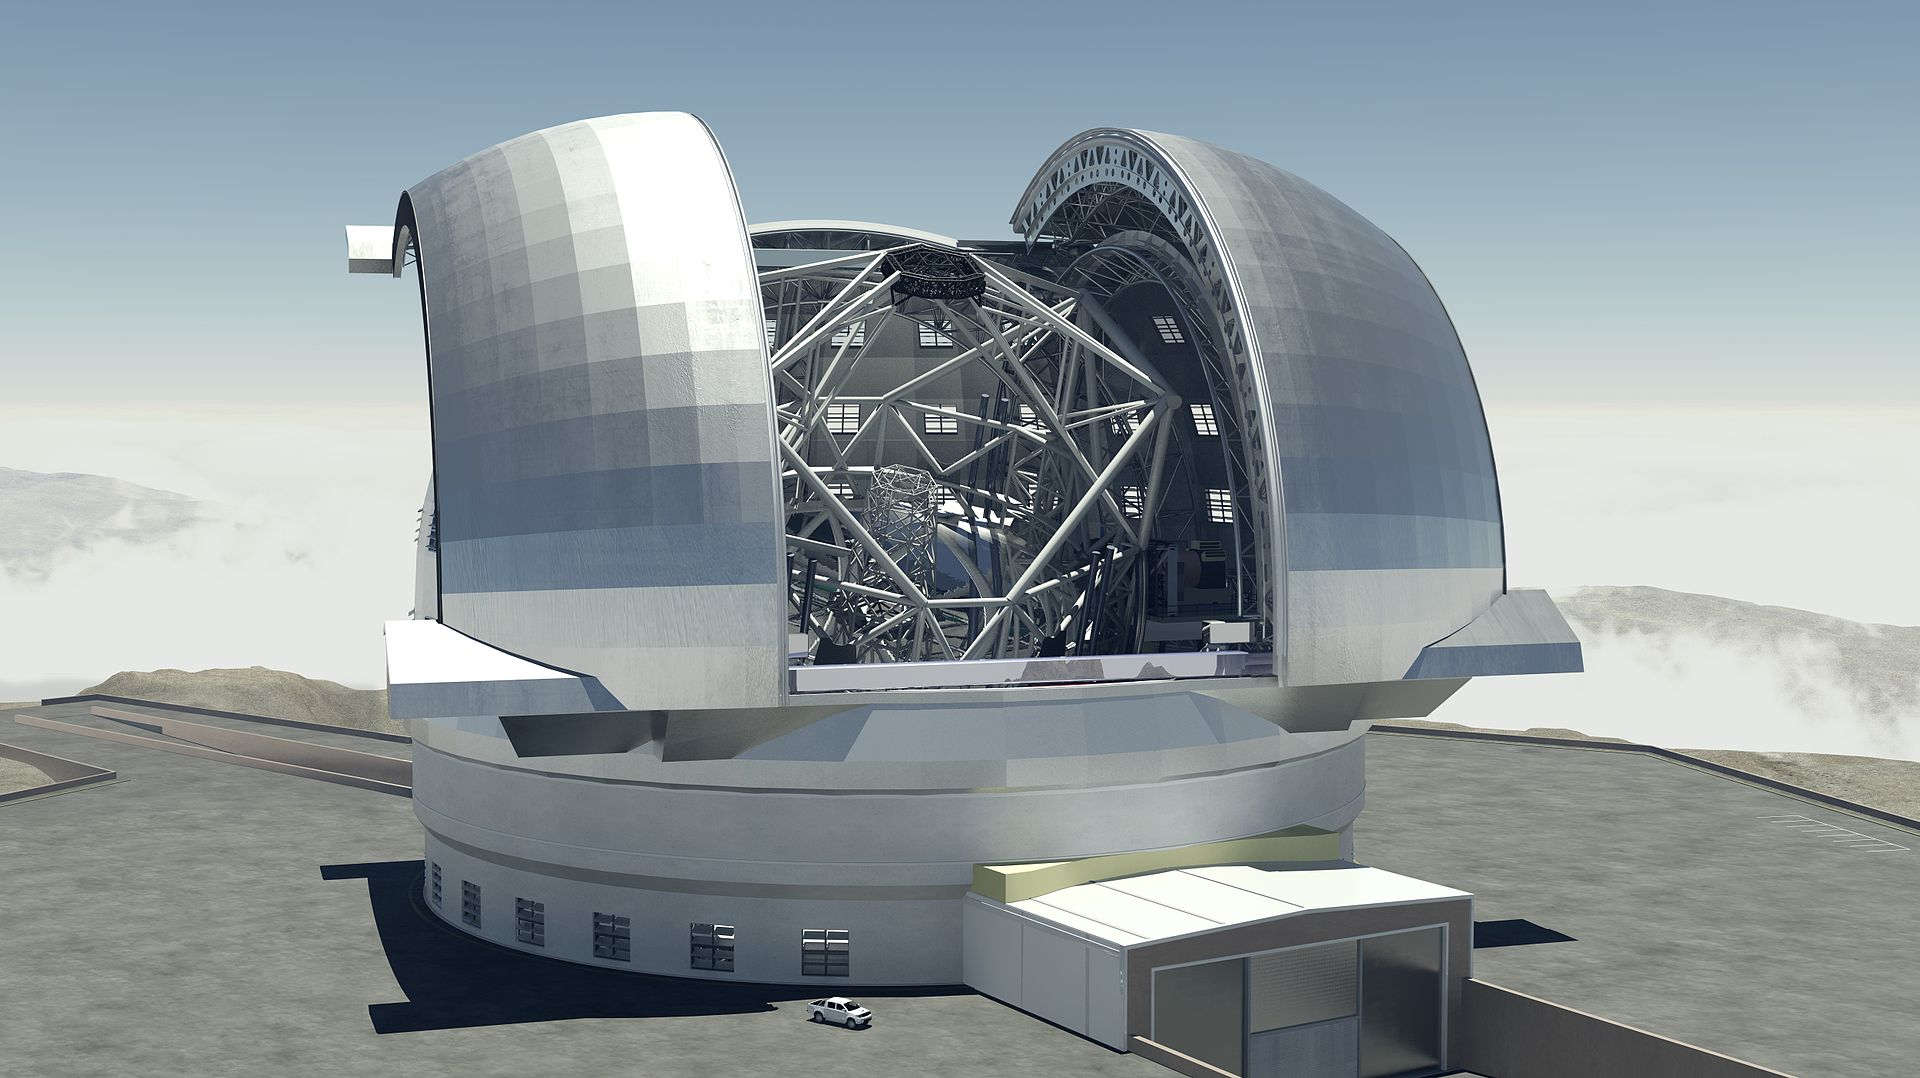 Телескоп ELT (Extremely Large Telescope) 18 Май 2018 07:24 второе